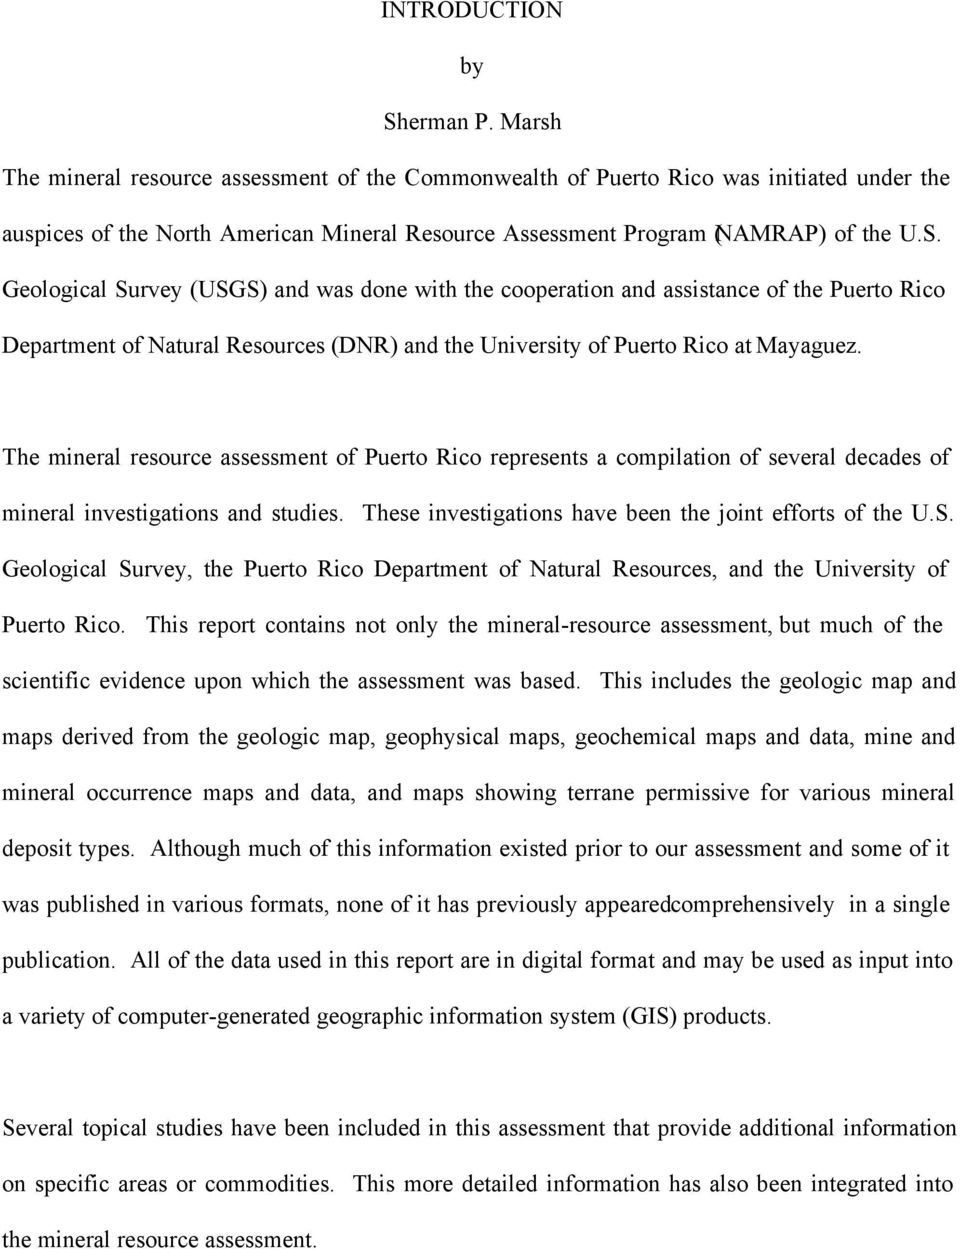 Geological Survey (USGS) and was done with the cooperation and assistance of the Puerto Rico Department of Natural Resources (DNR) and the University of Puerto Rico at Mayaguez.